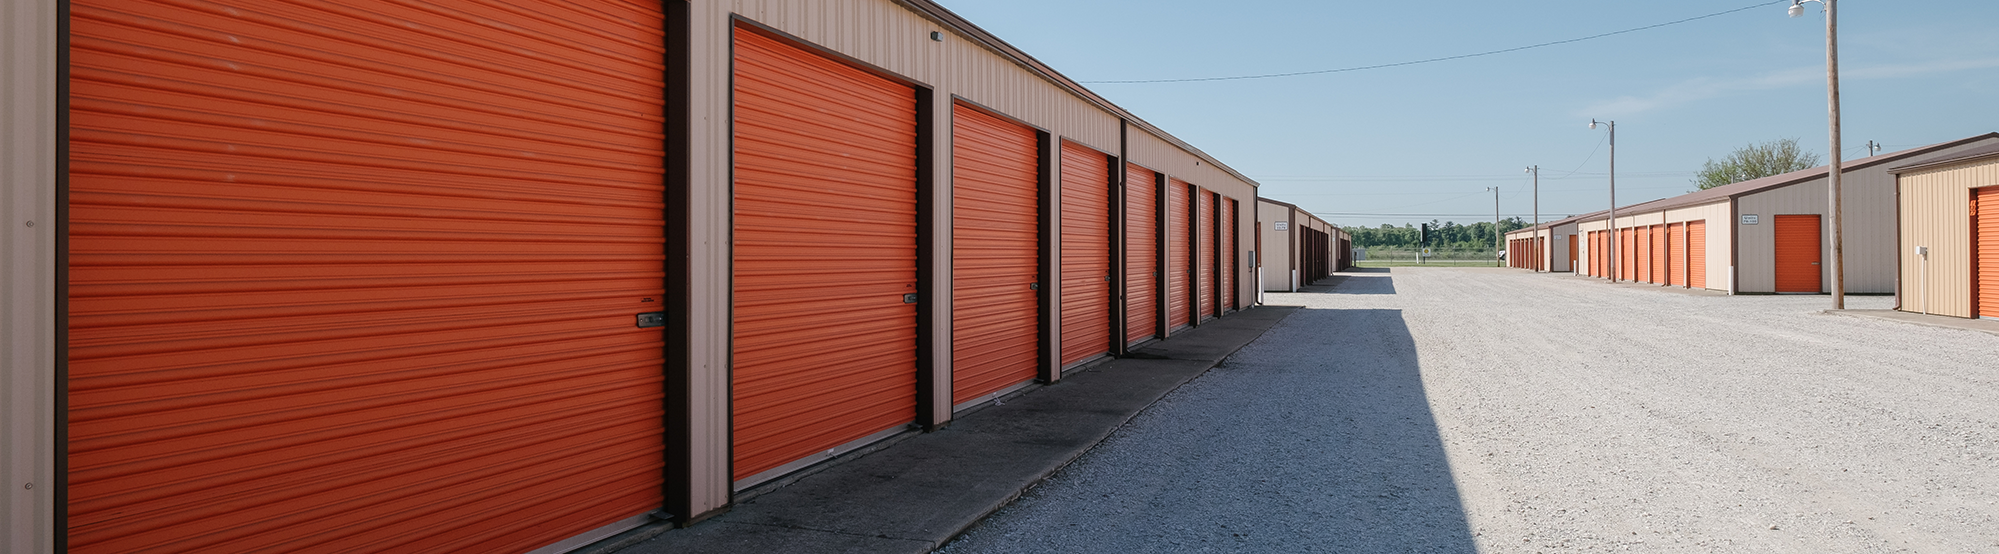 Drive Up Access Self Storage in Demotte, IN